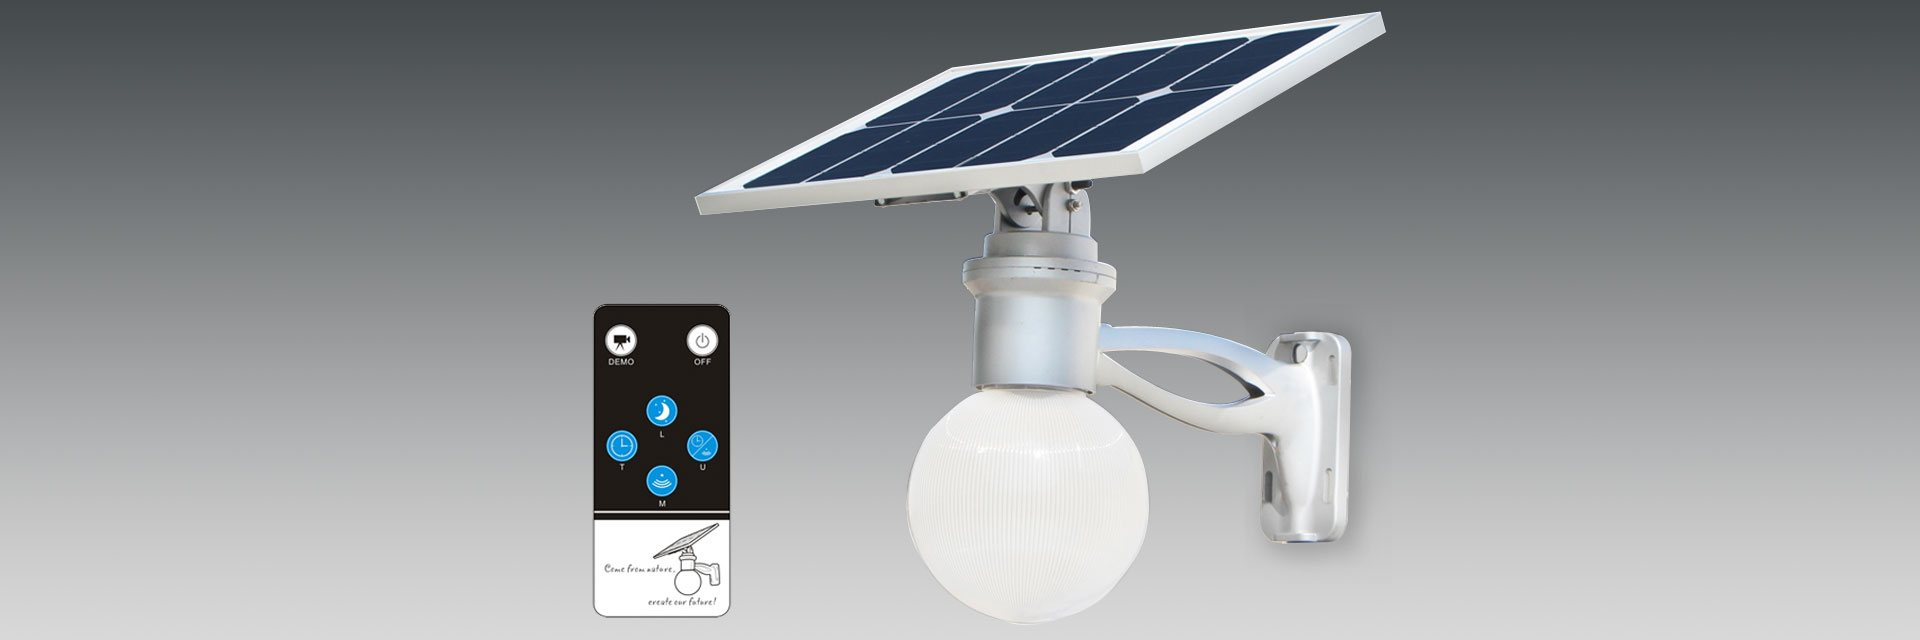 REMOTE CONTROLLED SOLAR LIGHTING